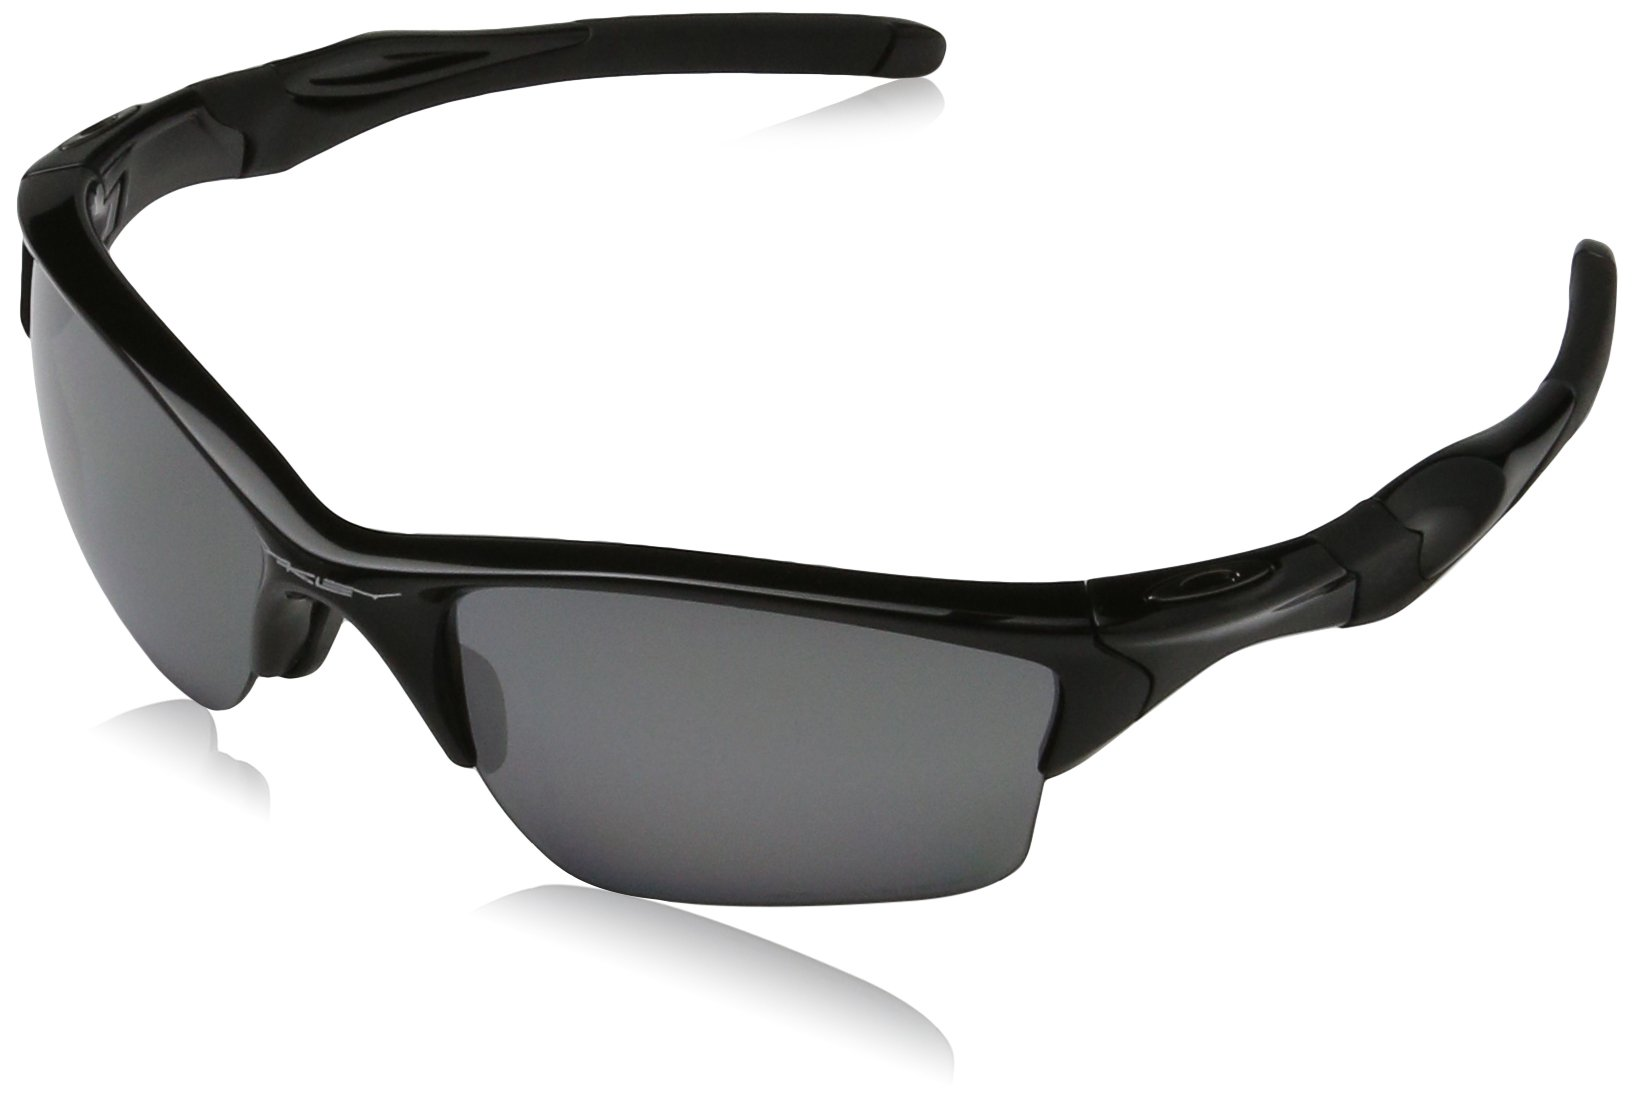 Oakley Mens Half Jacket 2.0 XL OO9154-05 Polarized Sunglasses 58mm, Polished Black Frame/Black Iridium Polarized Lens, 62 mm